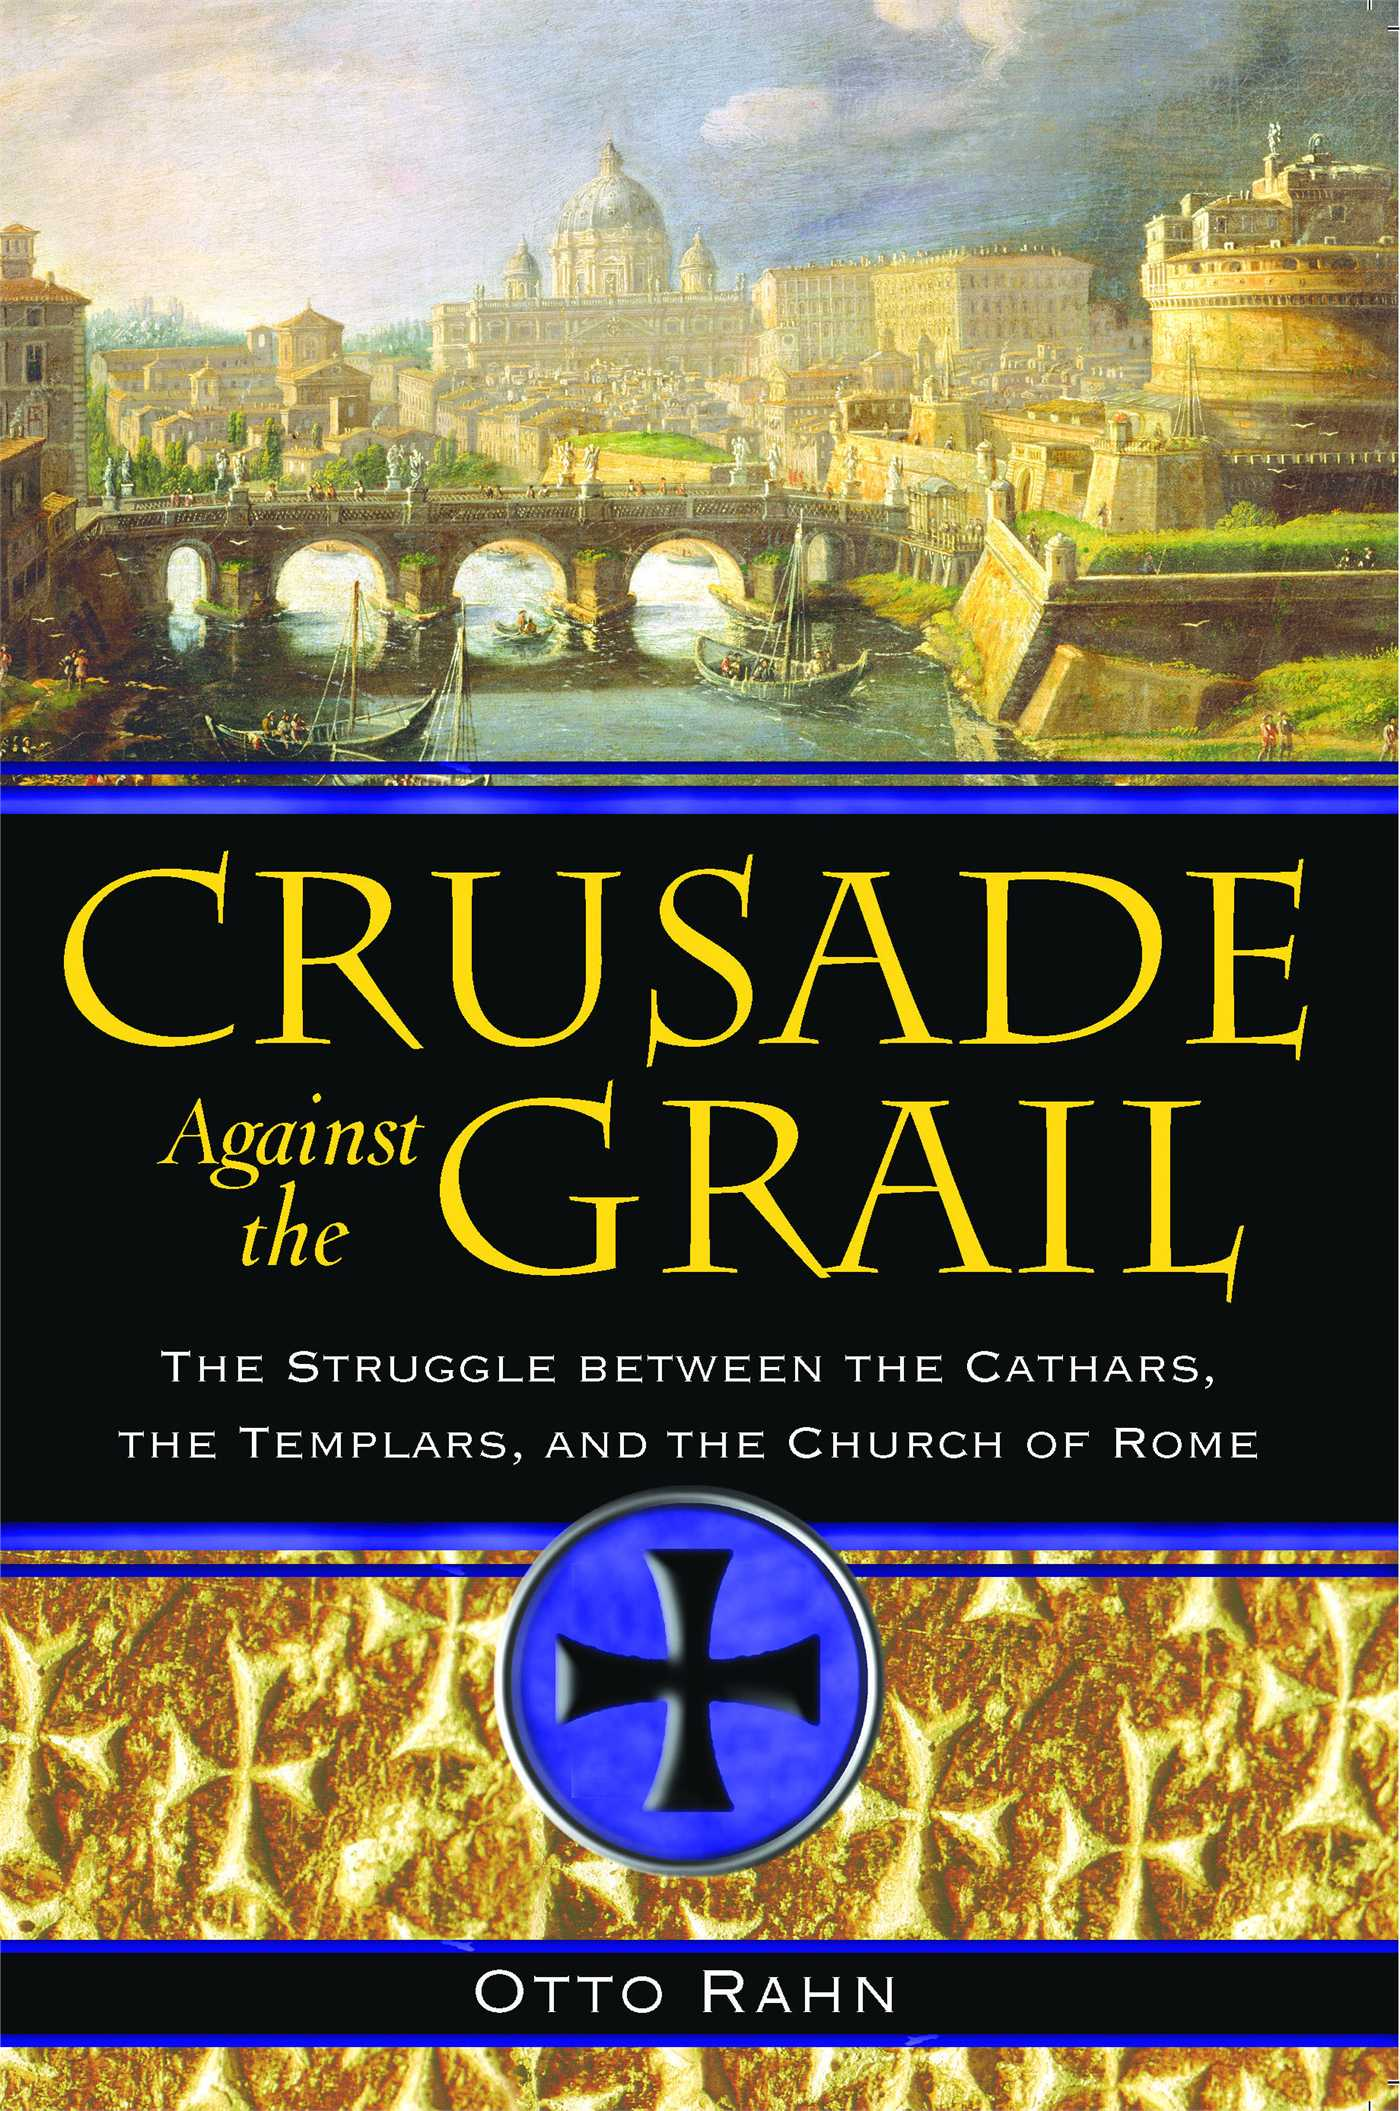 Crusade against the grail 9781594771354 hr